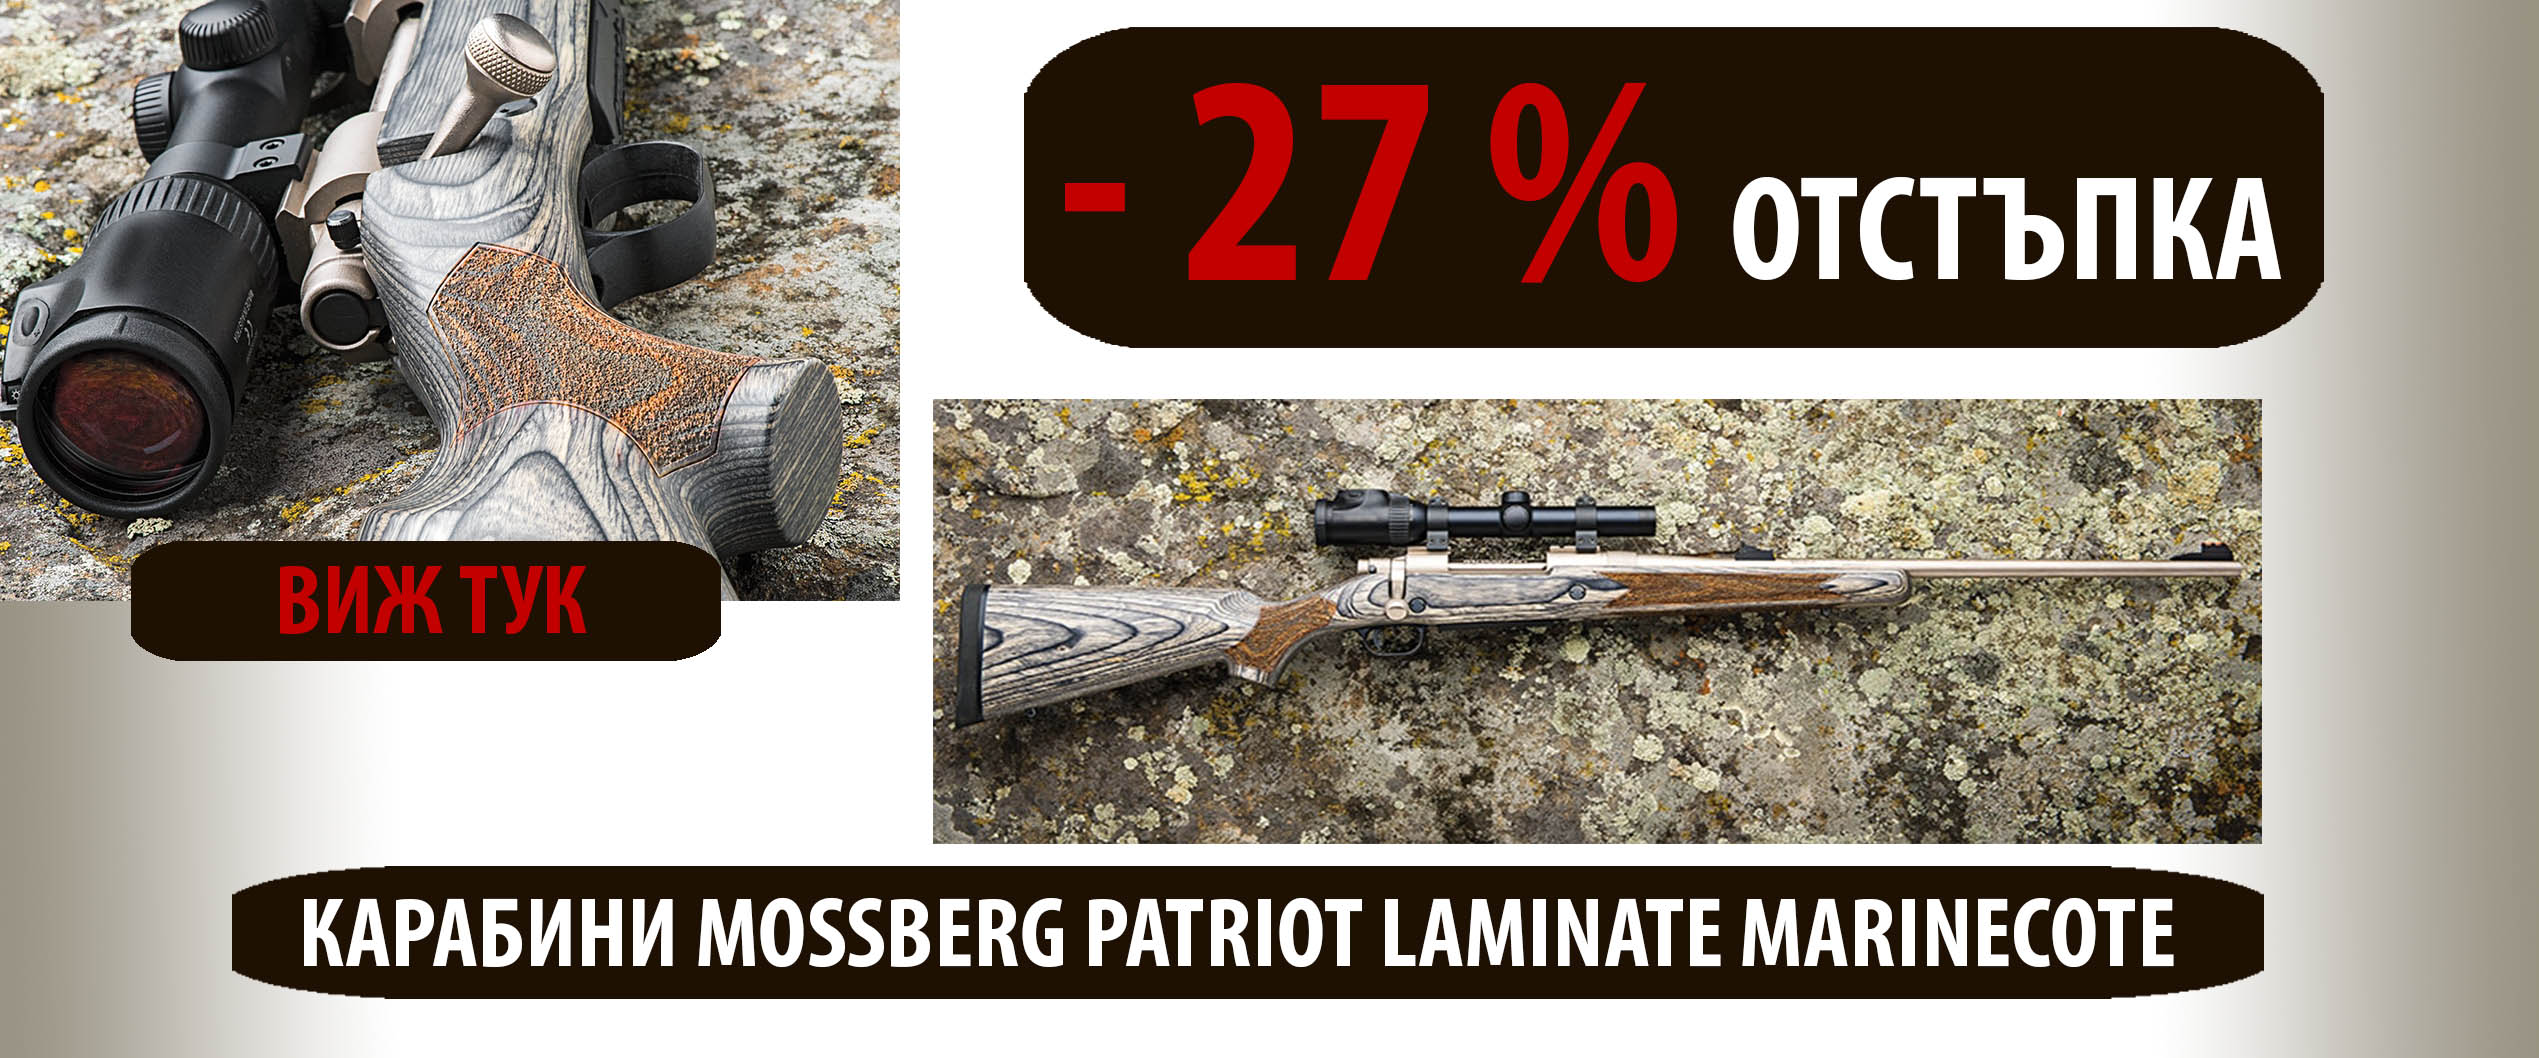 Промоция карабини Mossberg Patriot Laminate Marinecote